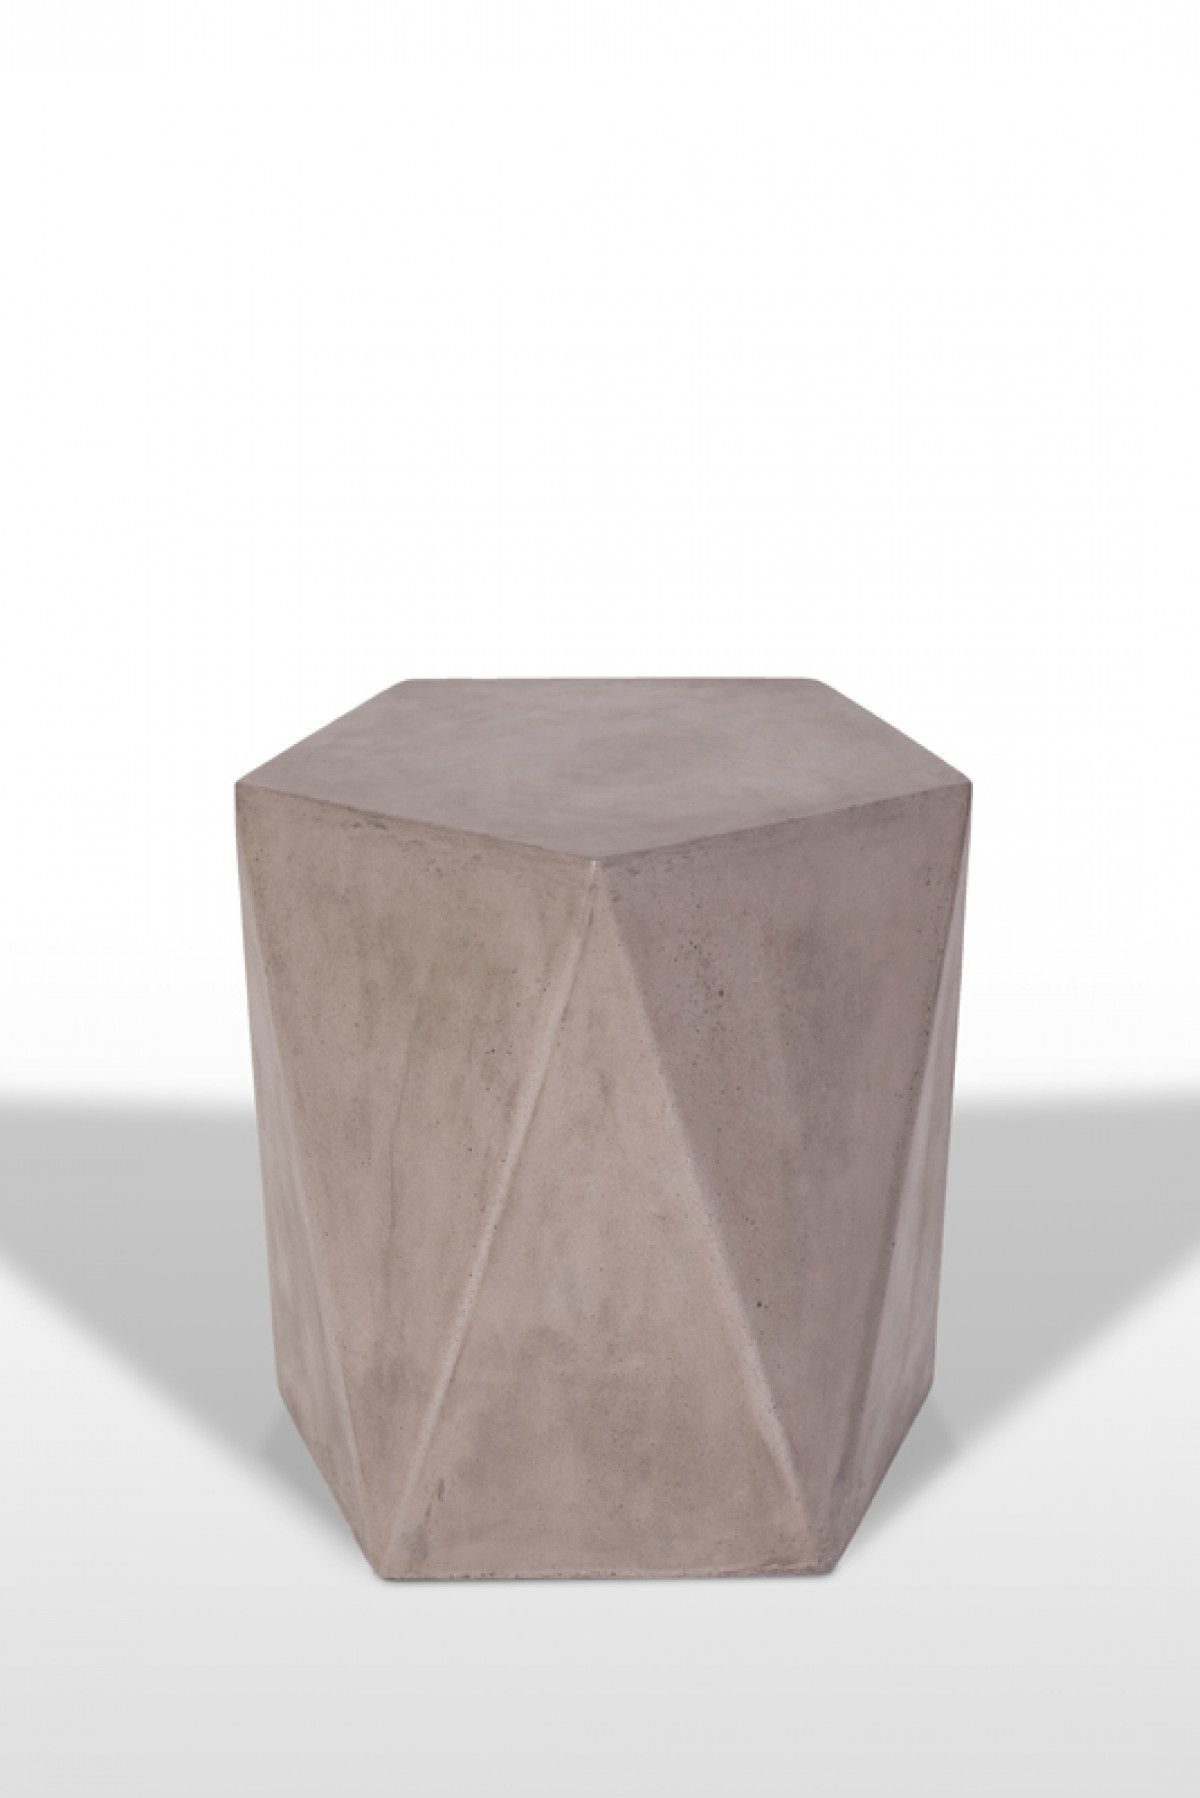 Swell Modrest Vida Modern Concrete Stool 18 X 18 X 18 High Gmtry Best Dining Table And Chair Ideas Images Gmtryco